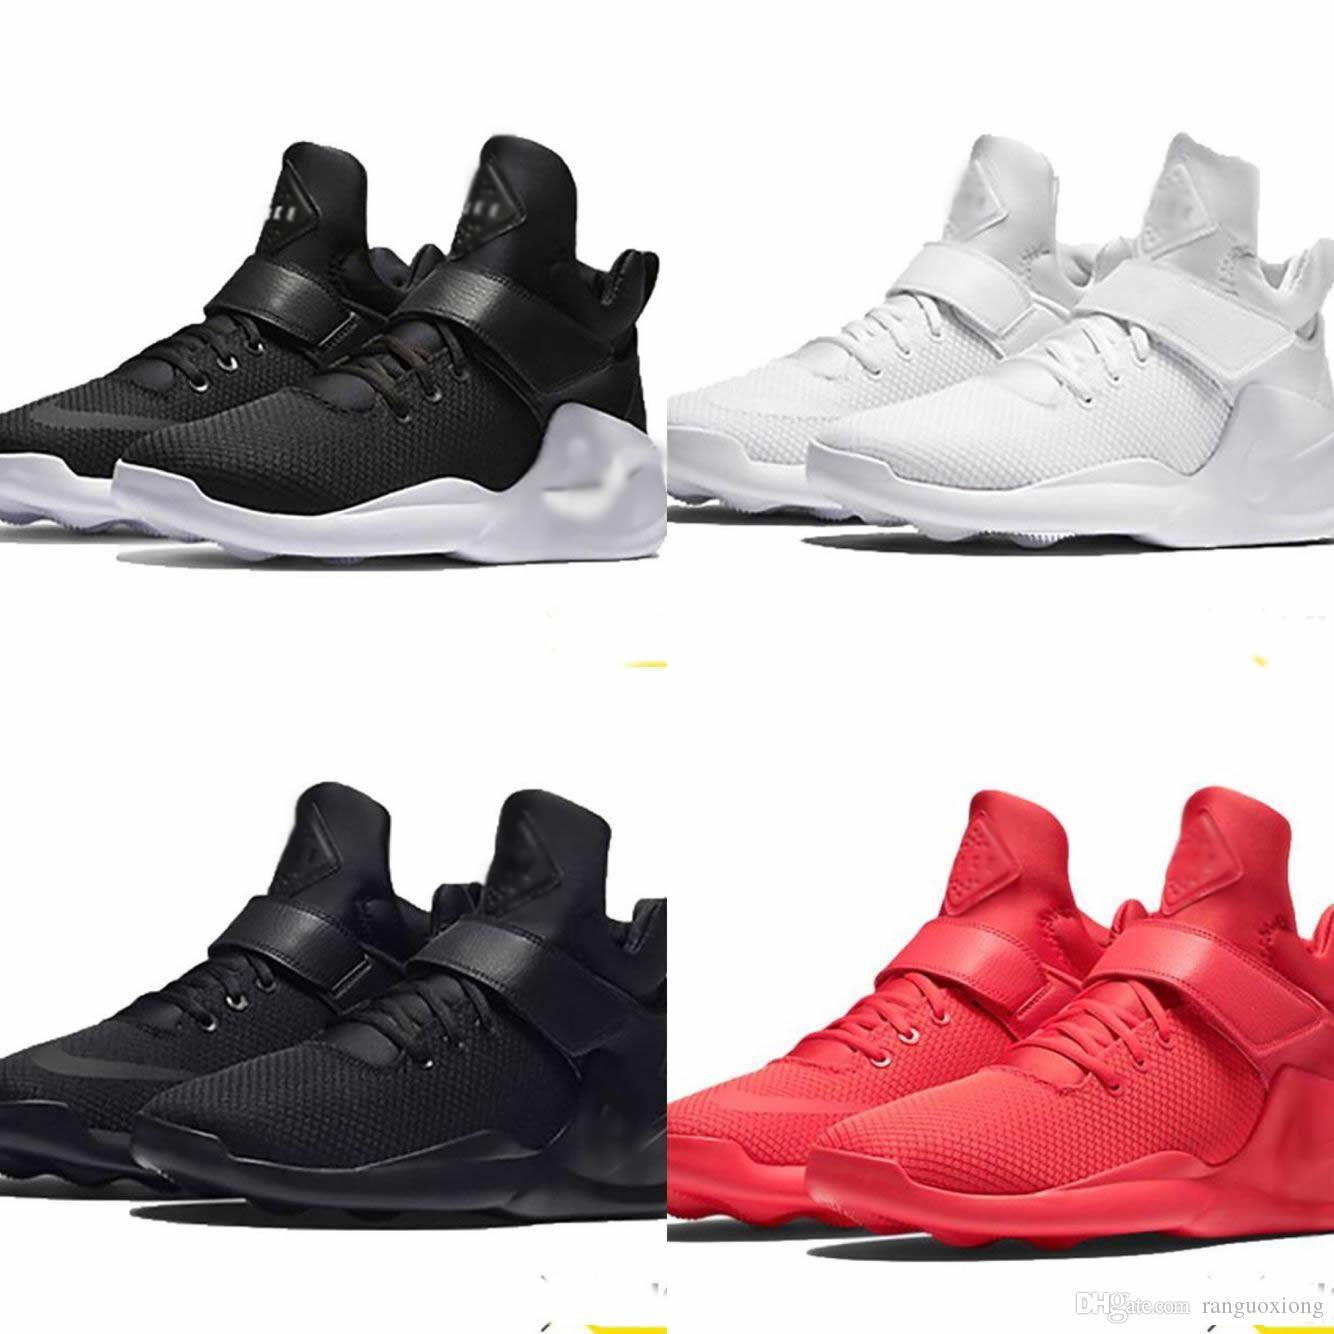 a85d2edc49e7 New Air Kwazi Running Shoes For Men Or Women Black Red White High Quality  Basketball Boots Outdoor Sneakers Athletic Casual Sport Shoes Cool Shoes  Naot ...